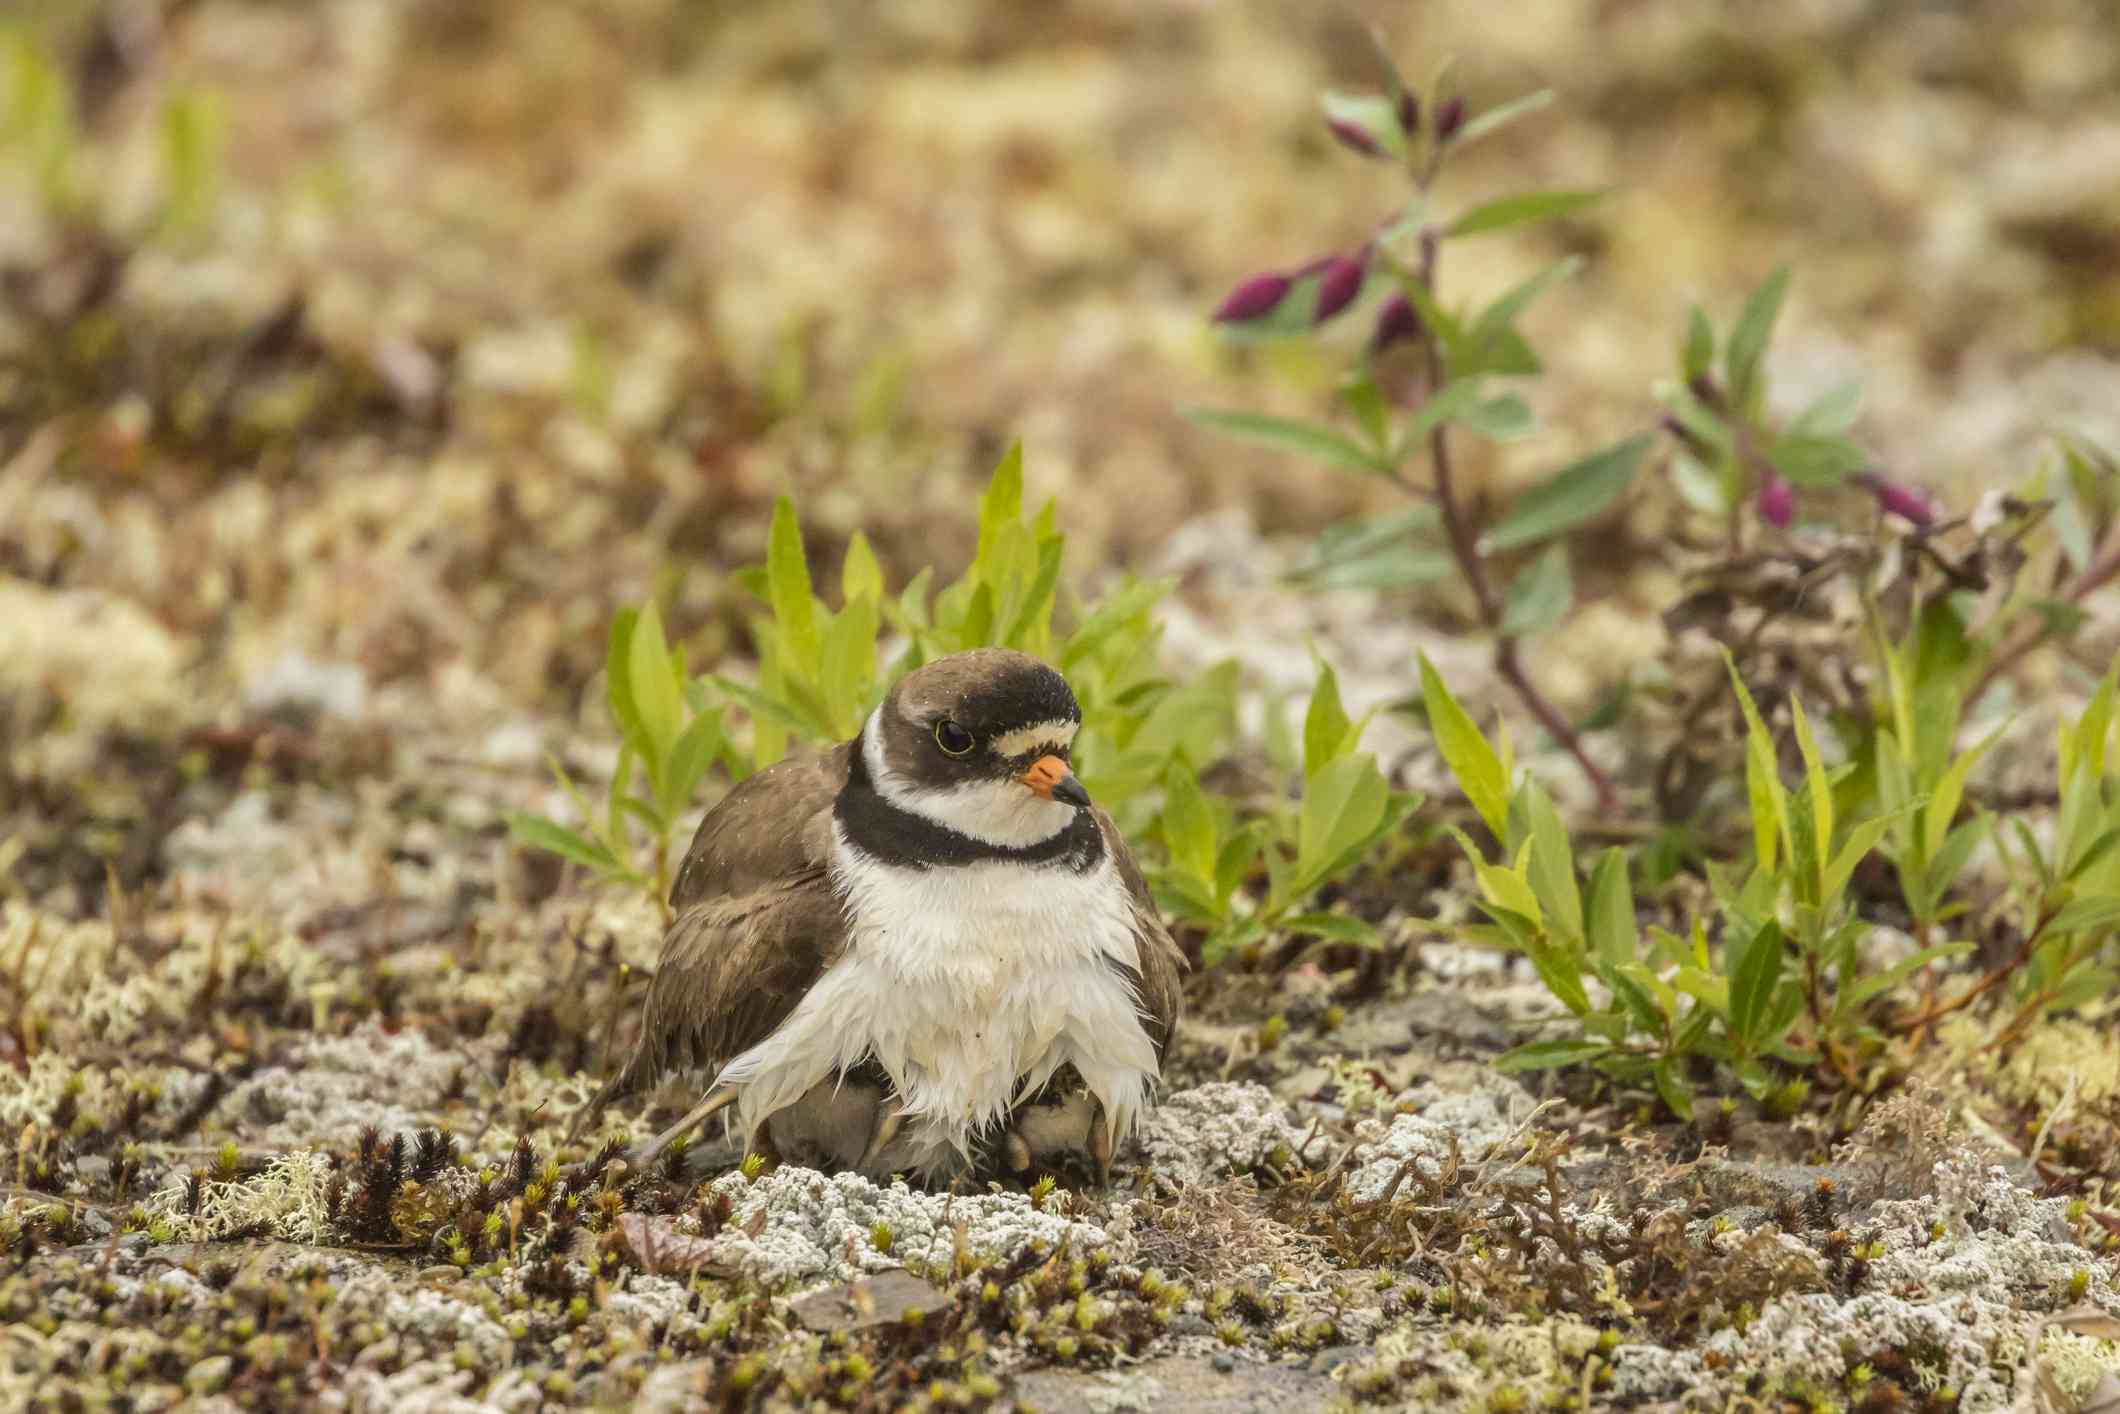 Semipalmated plover (Charadrius semipalmatus) adult with brooding chicks on the ground in Nome, Alaska